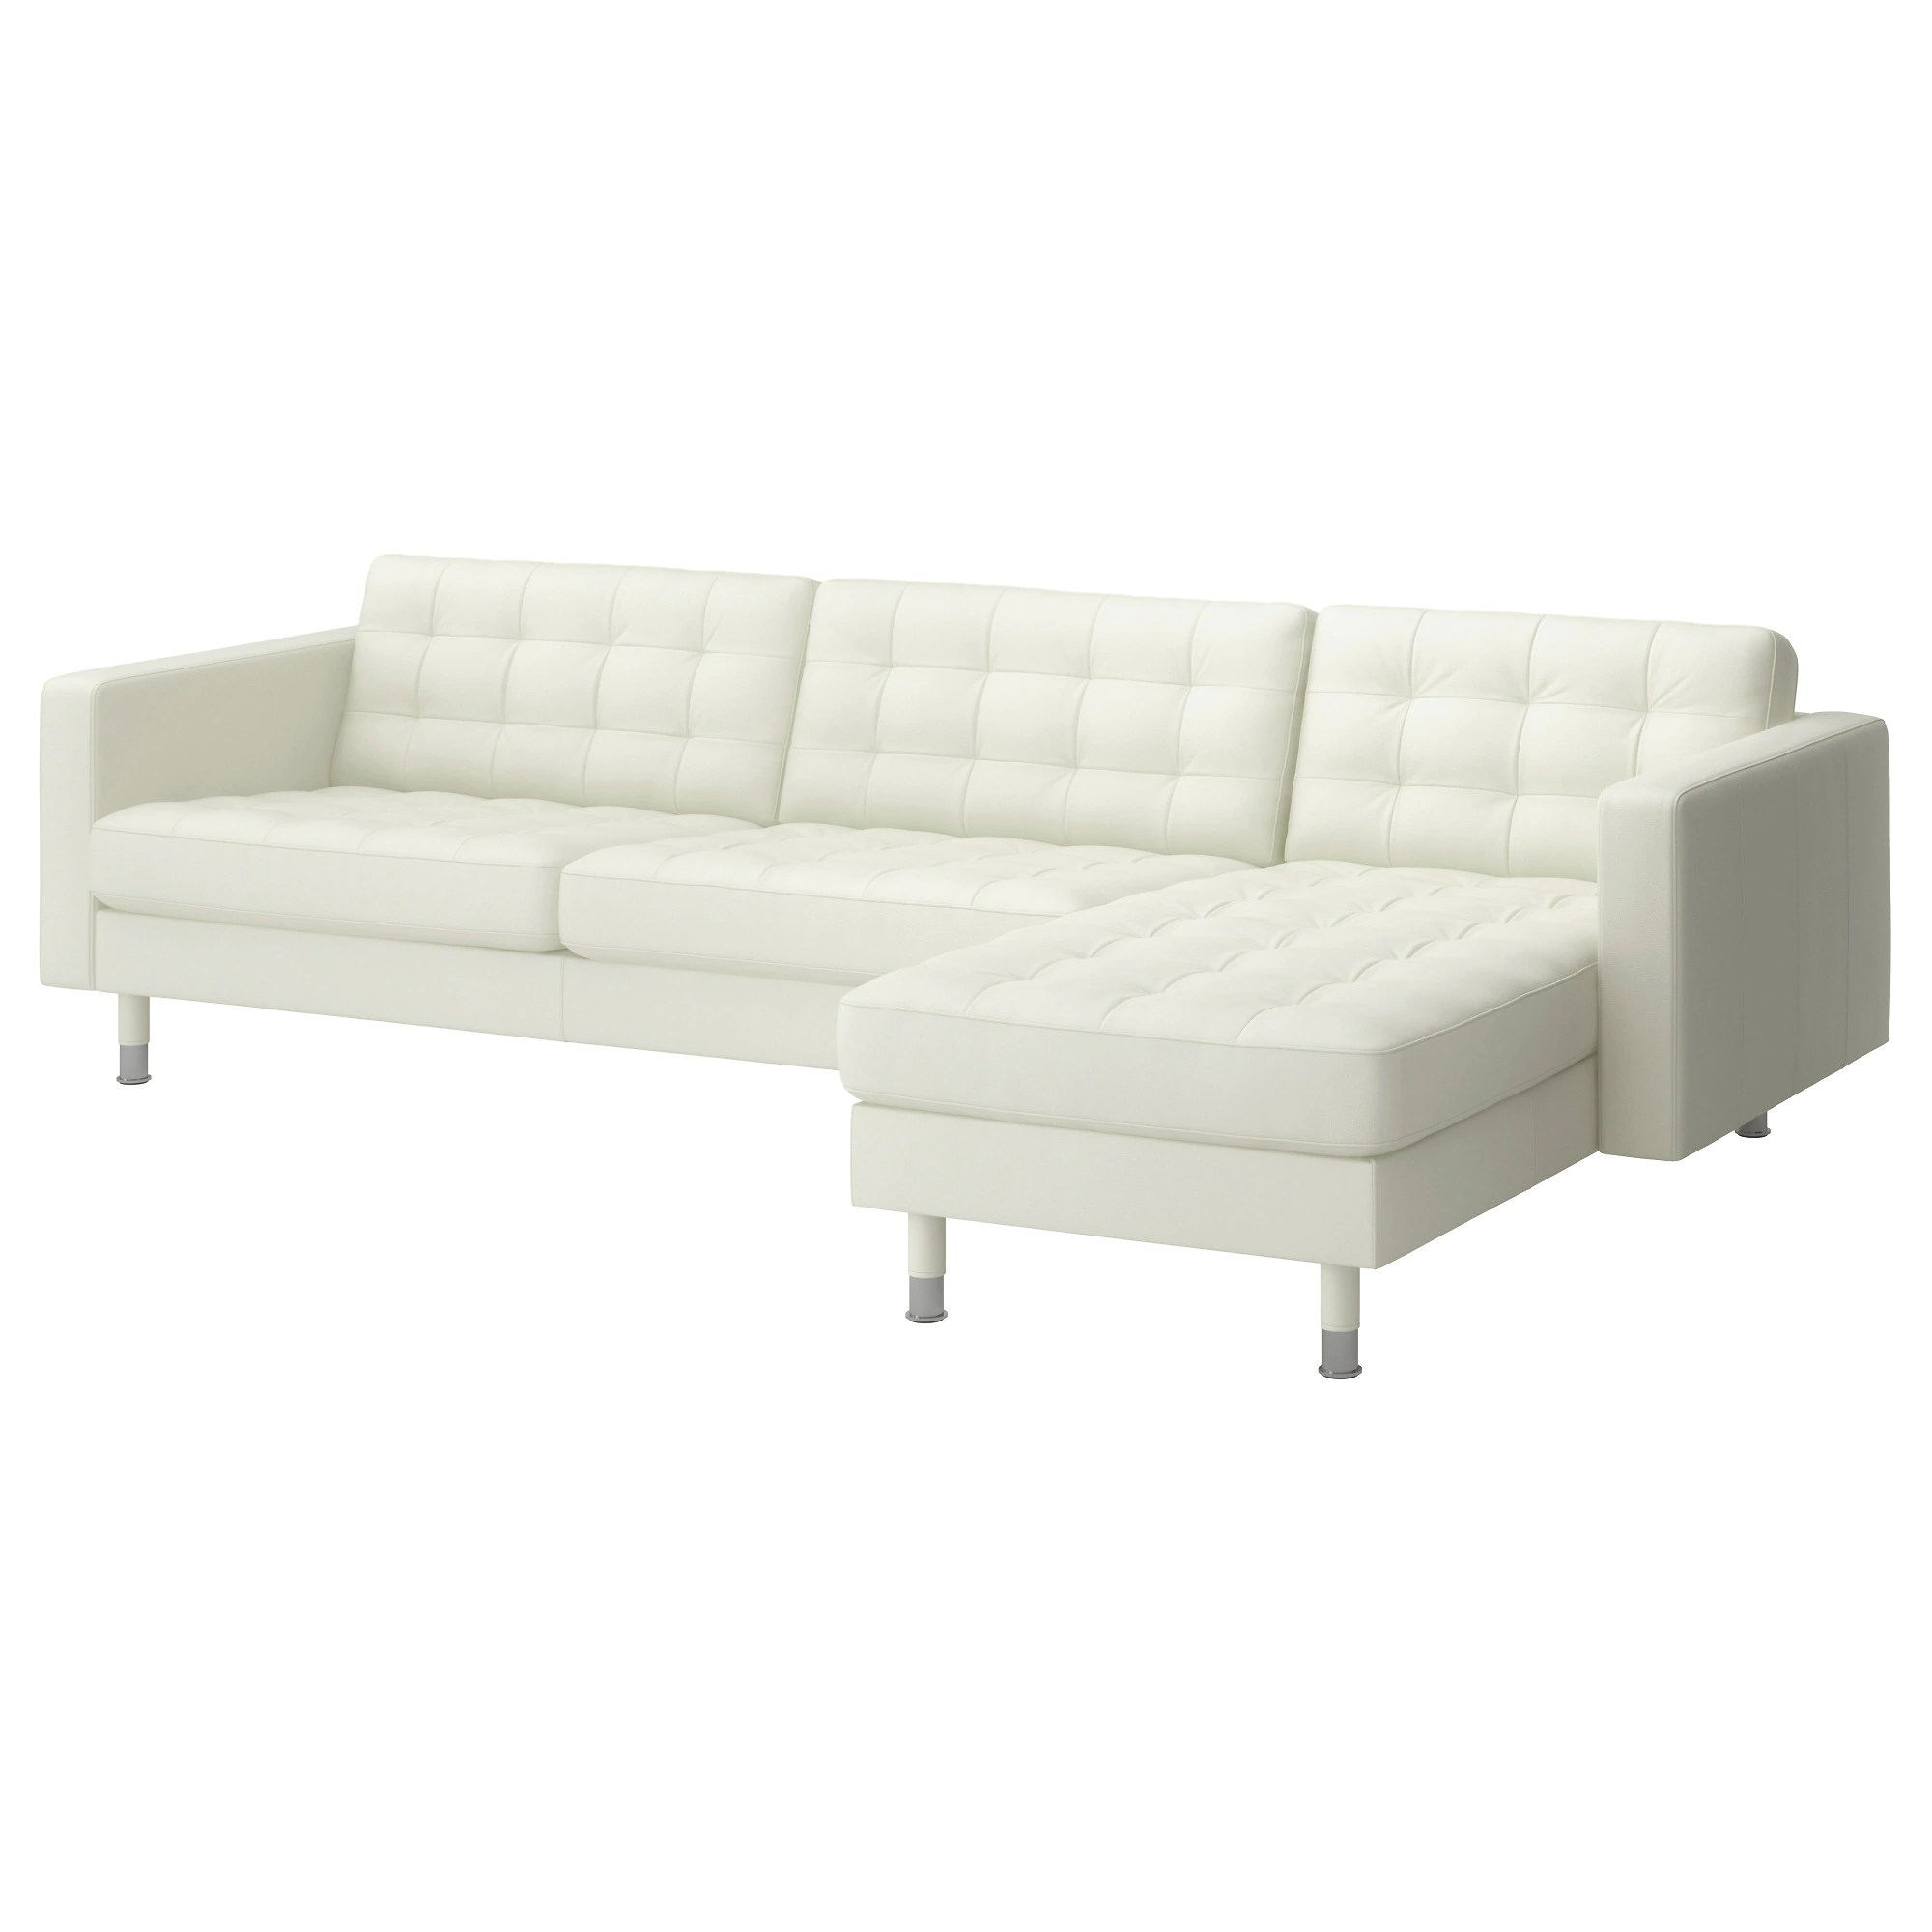 Sofa With Foam Seats Landskrona Sectional 4 Seat With Chaise Grann Bomstad Grann Bomstad White Metal